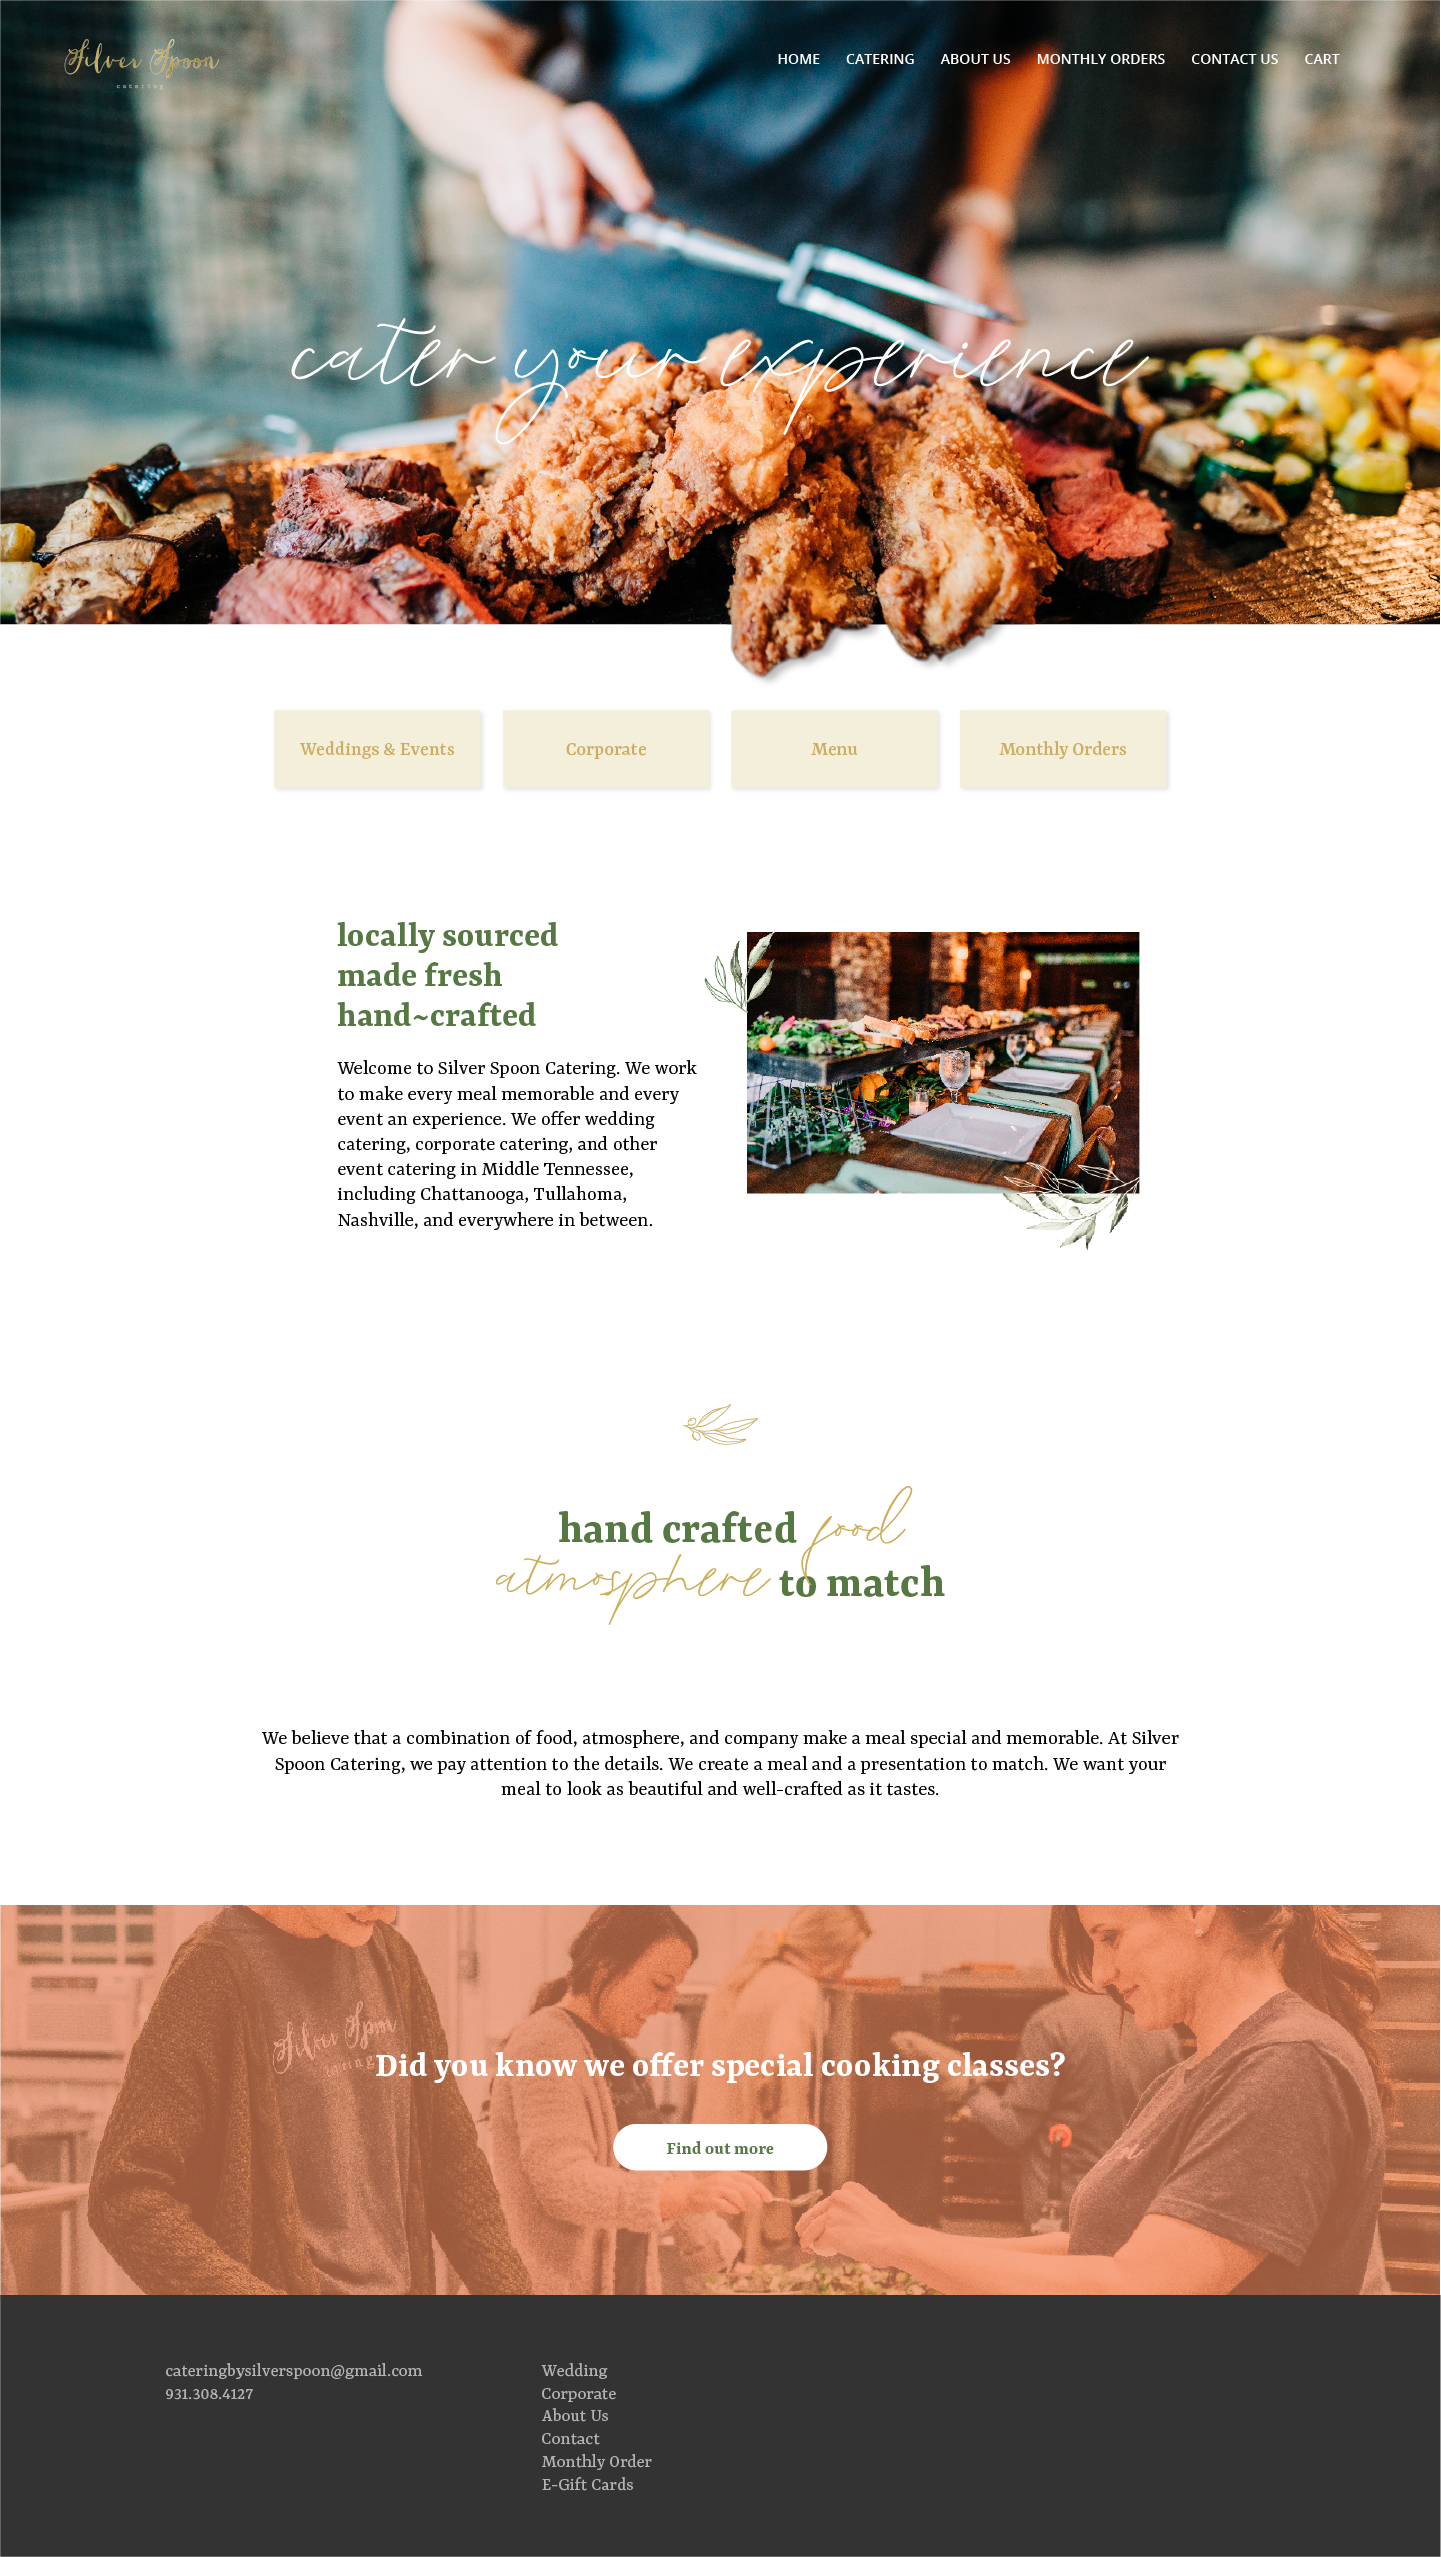 Silver Spoon Catering Home web page layout.